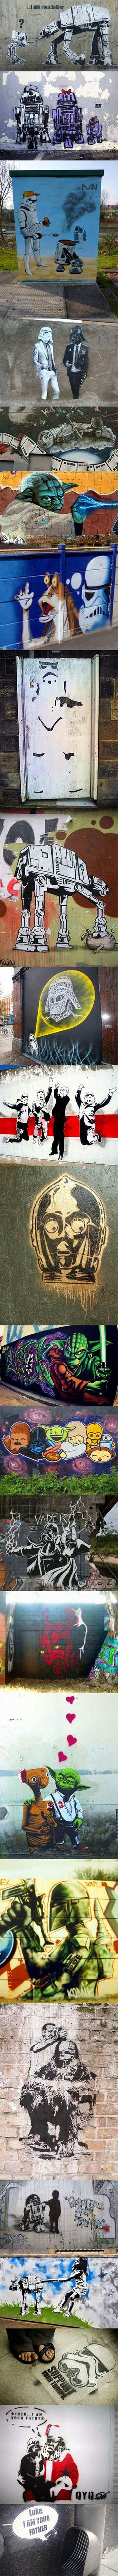 When you let artistic Star Wars fanatics run loose on the streets, you get these urban masterpieces.